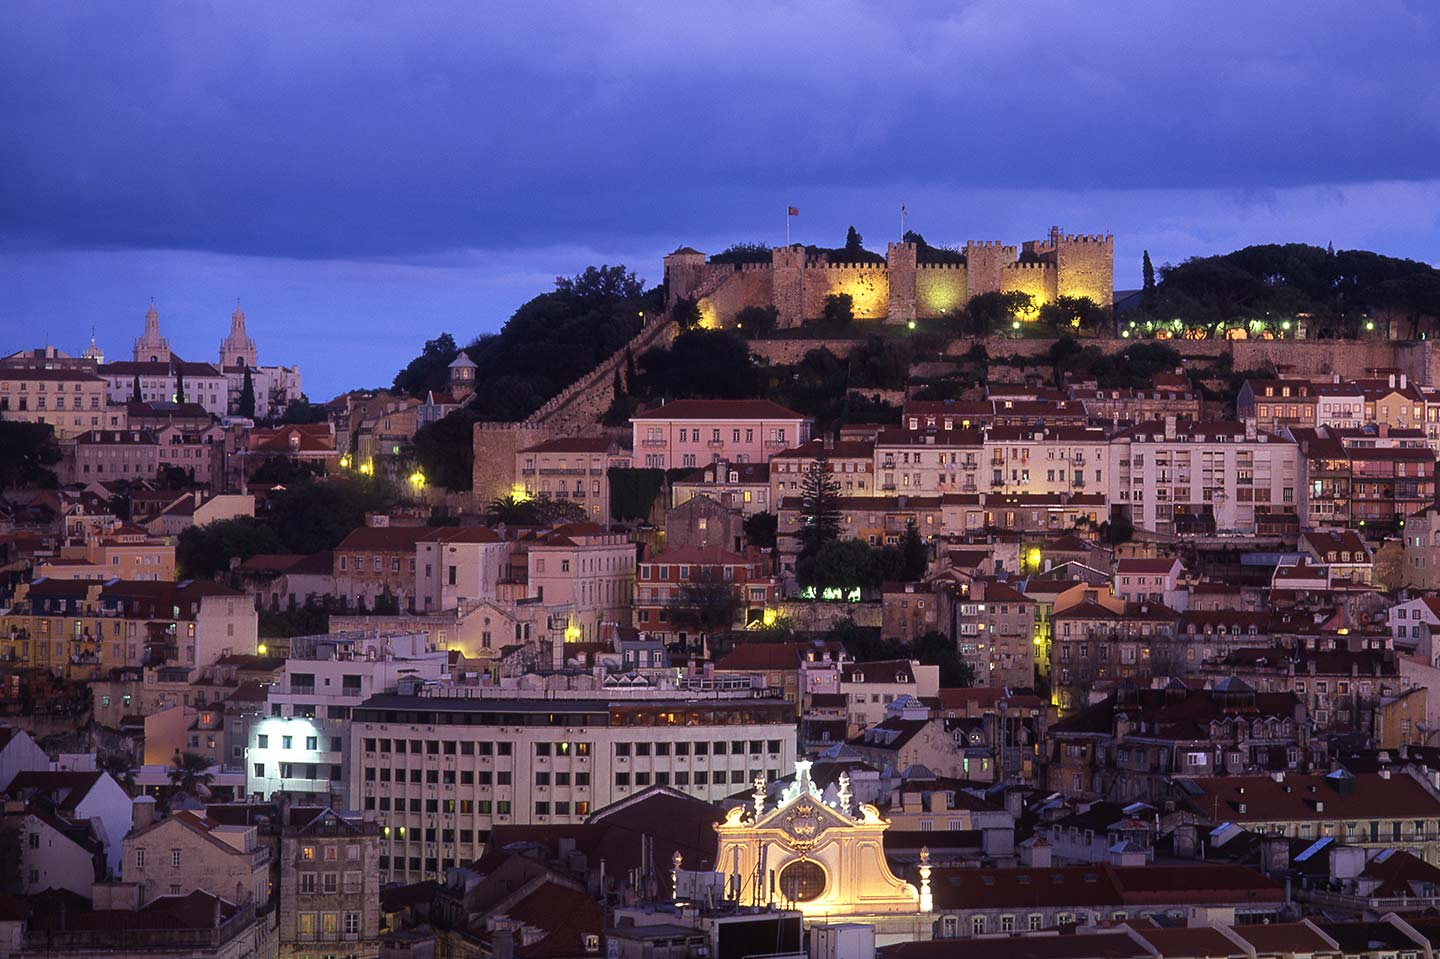 Image of the Castelo de Sao Jorge in Lisbon